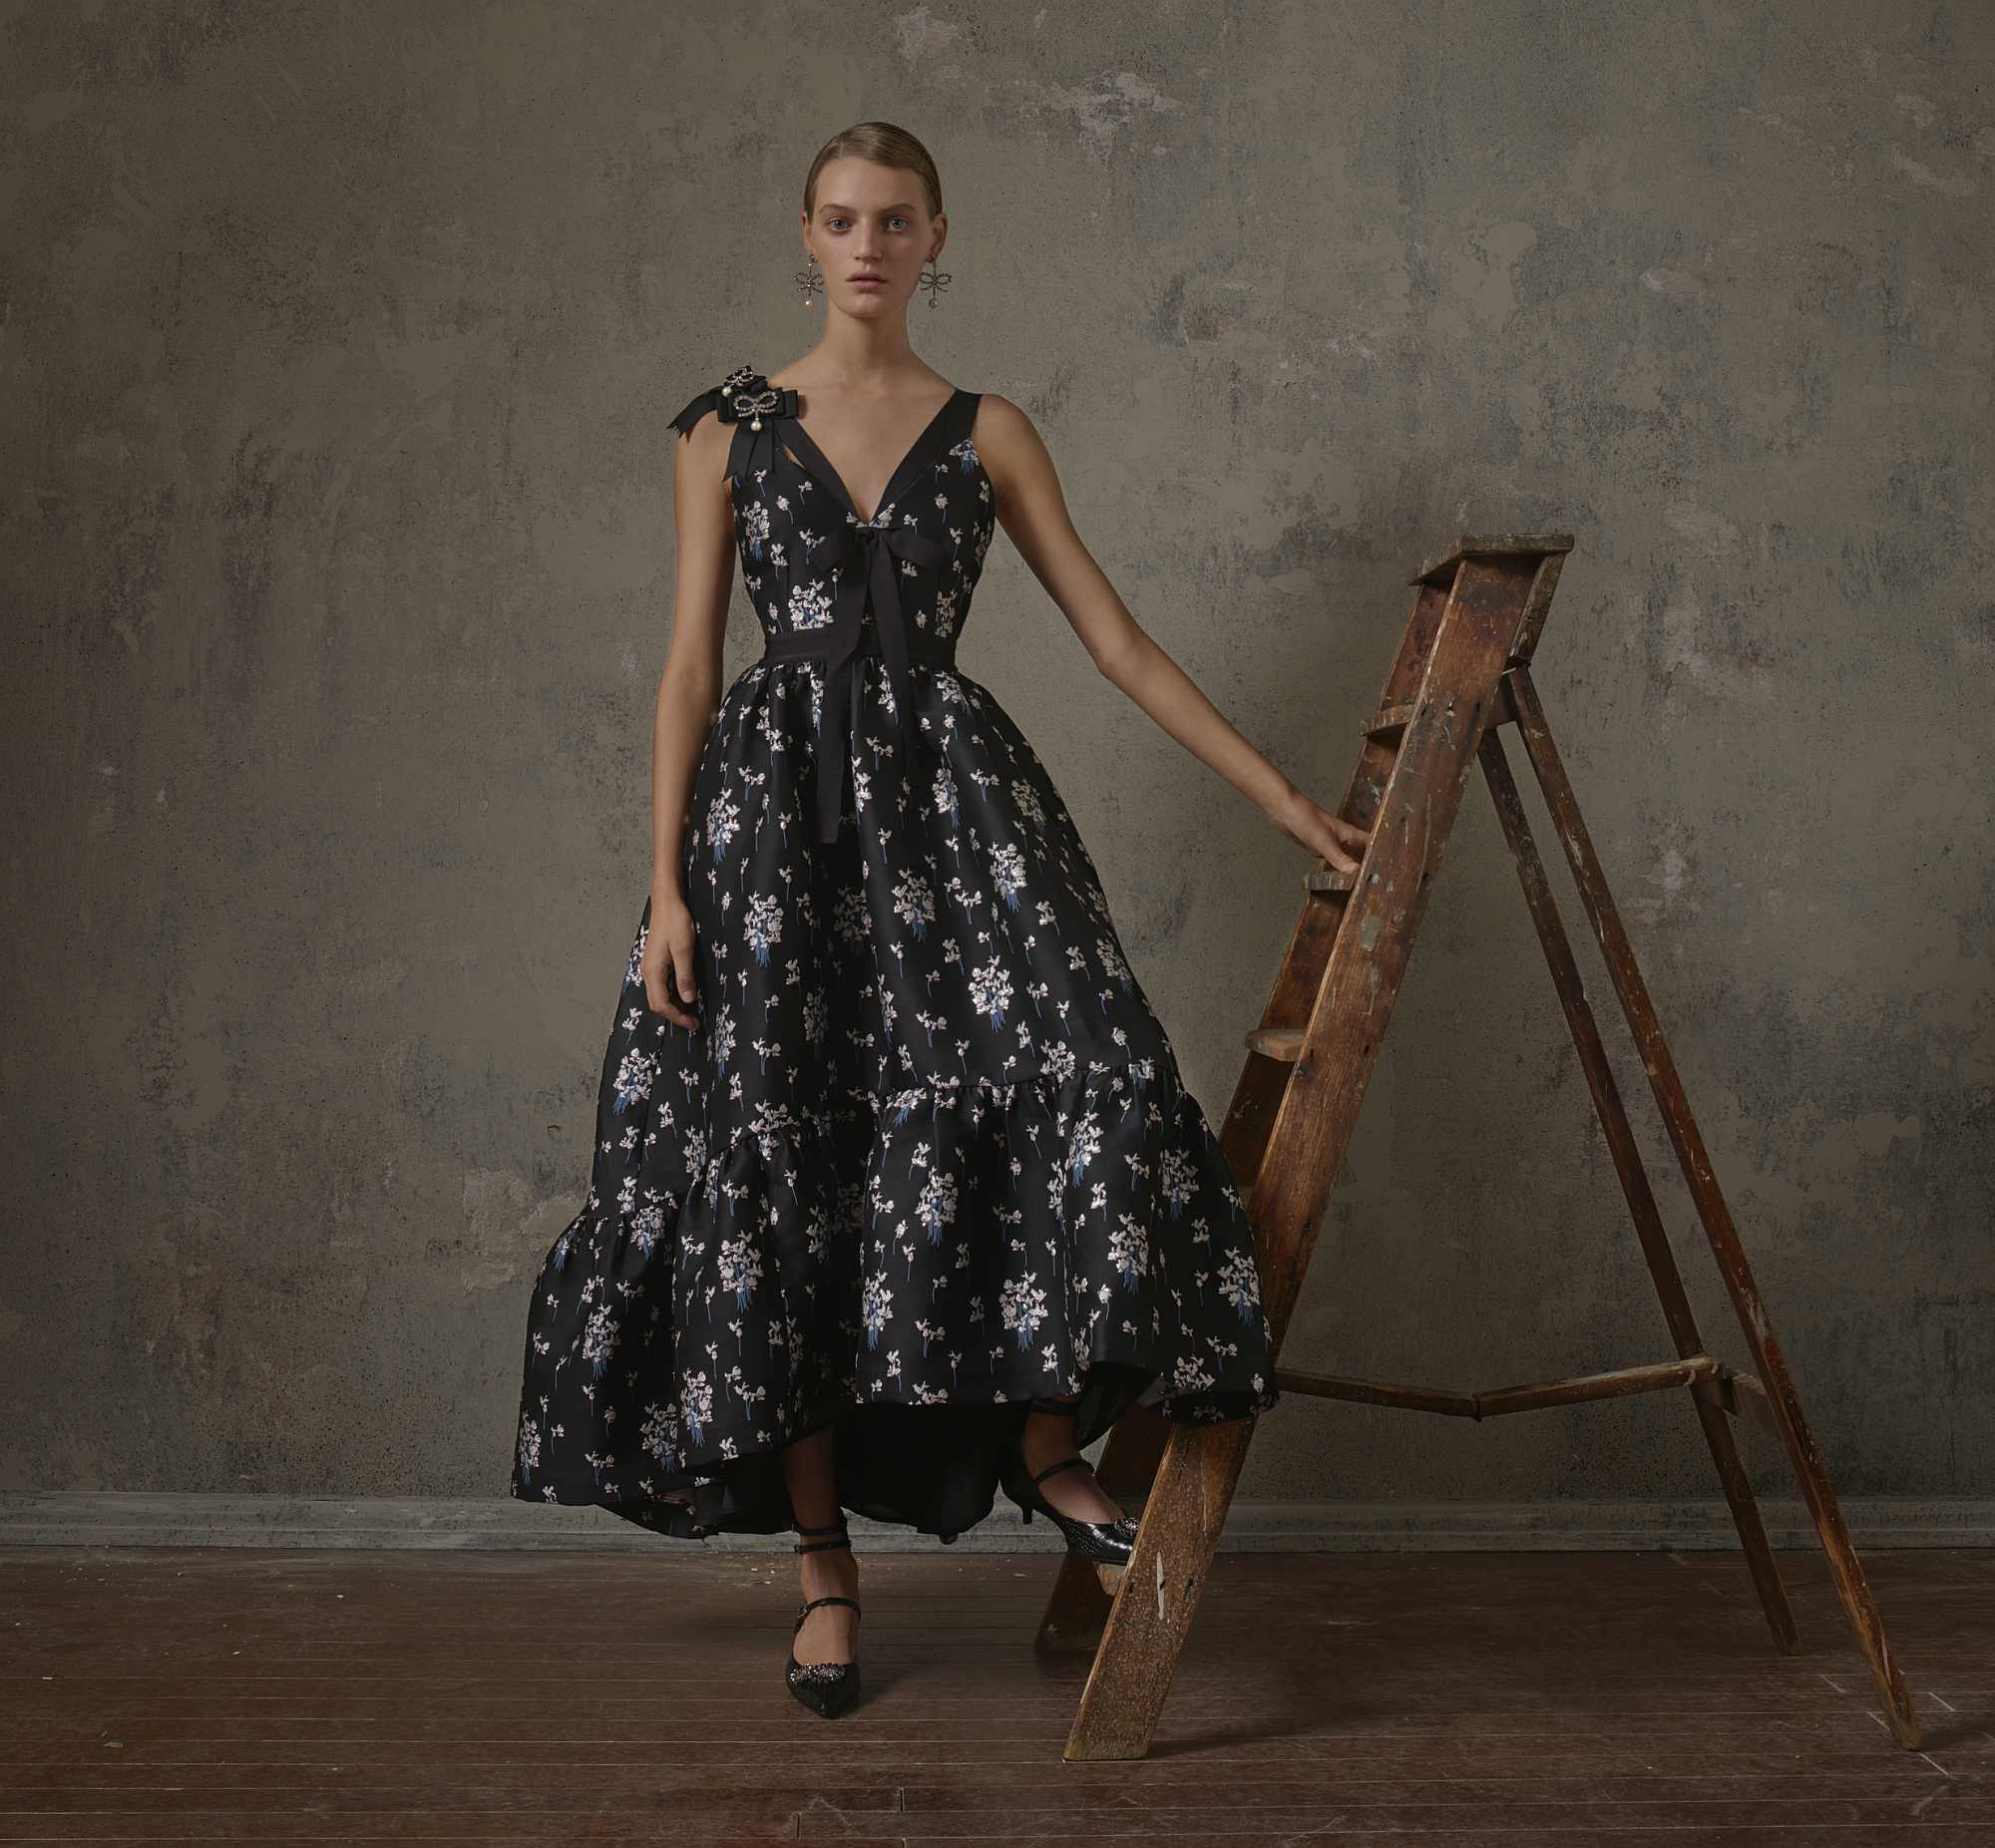 b932acc05019 Erdem x H&M launches this week: These are the pieces you should snap ...